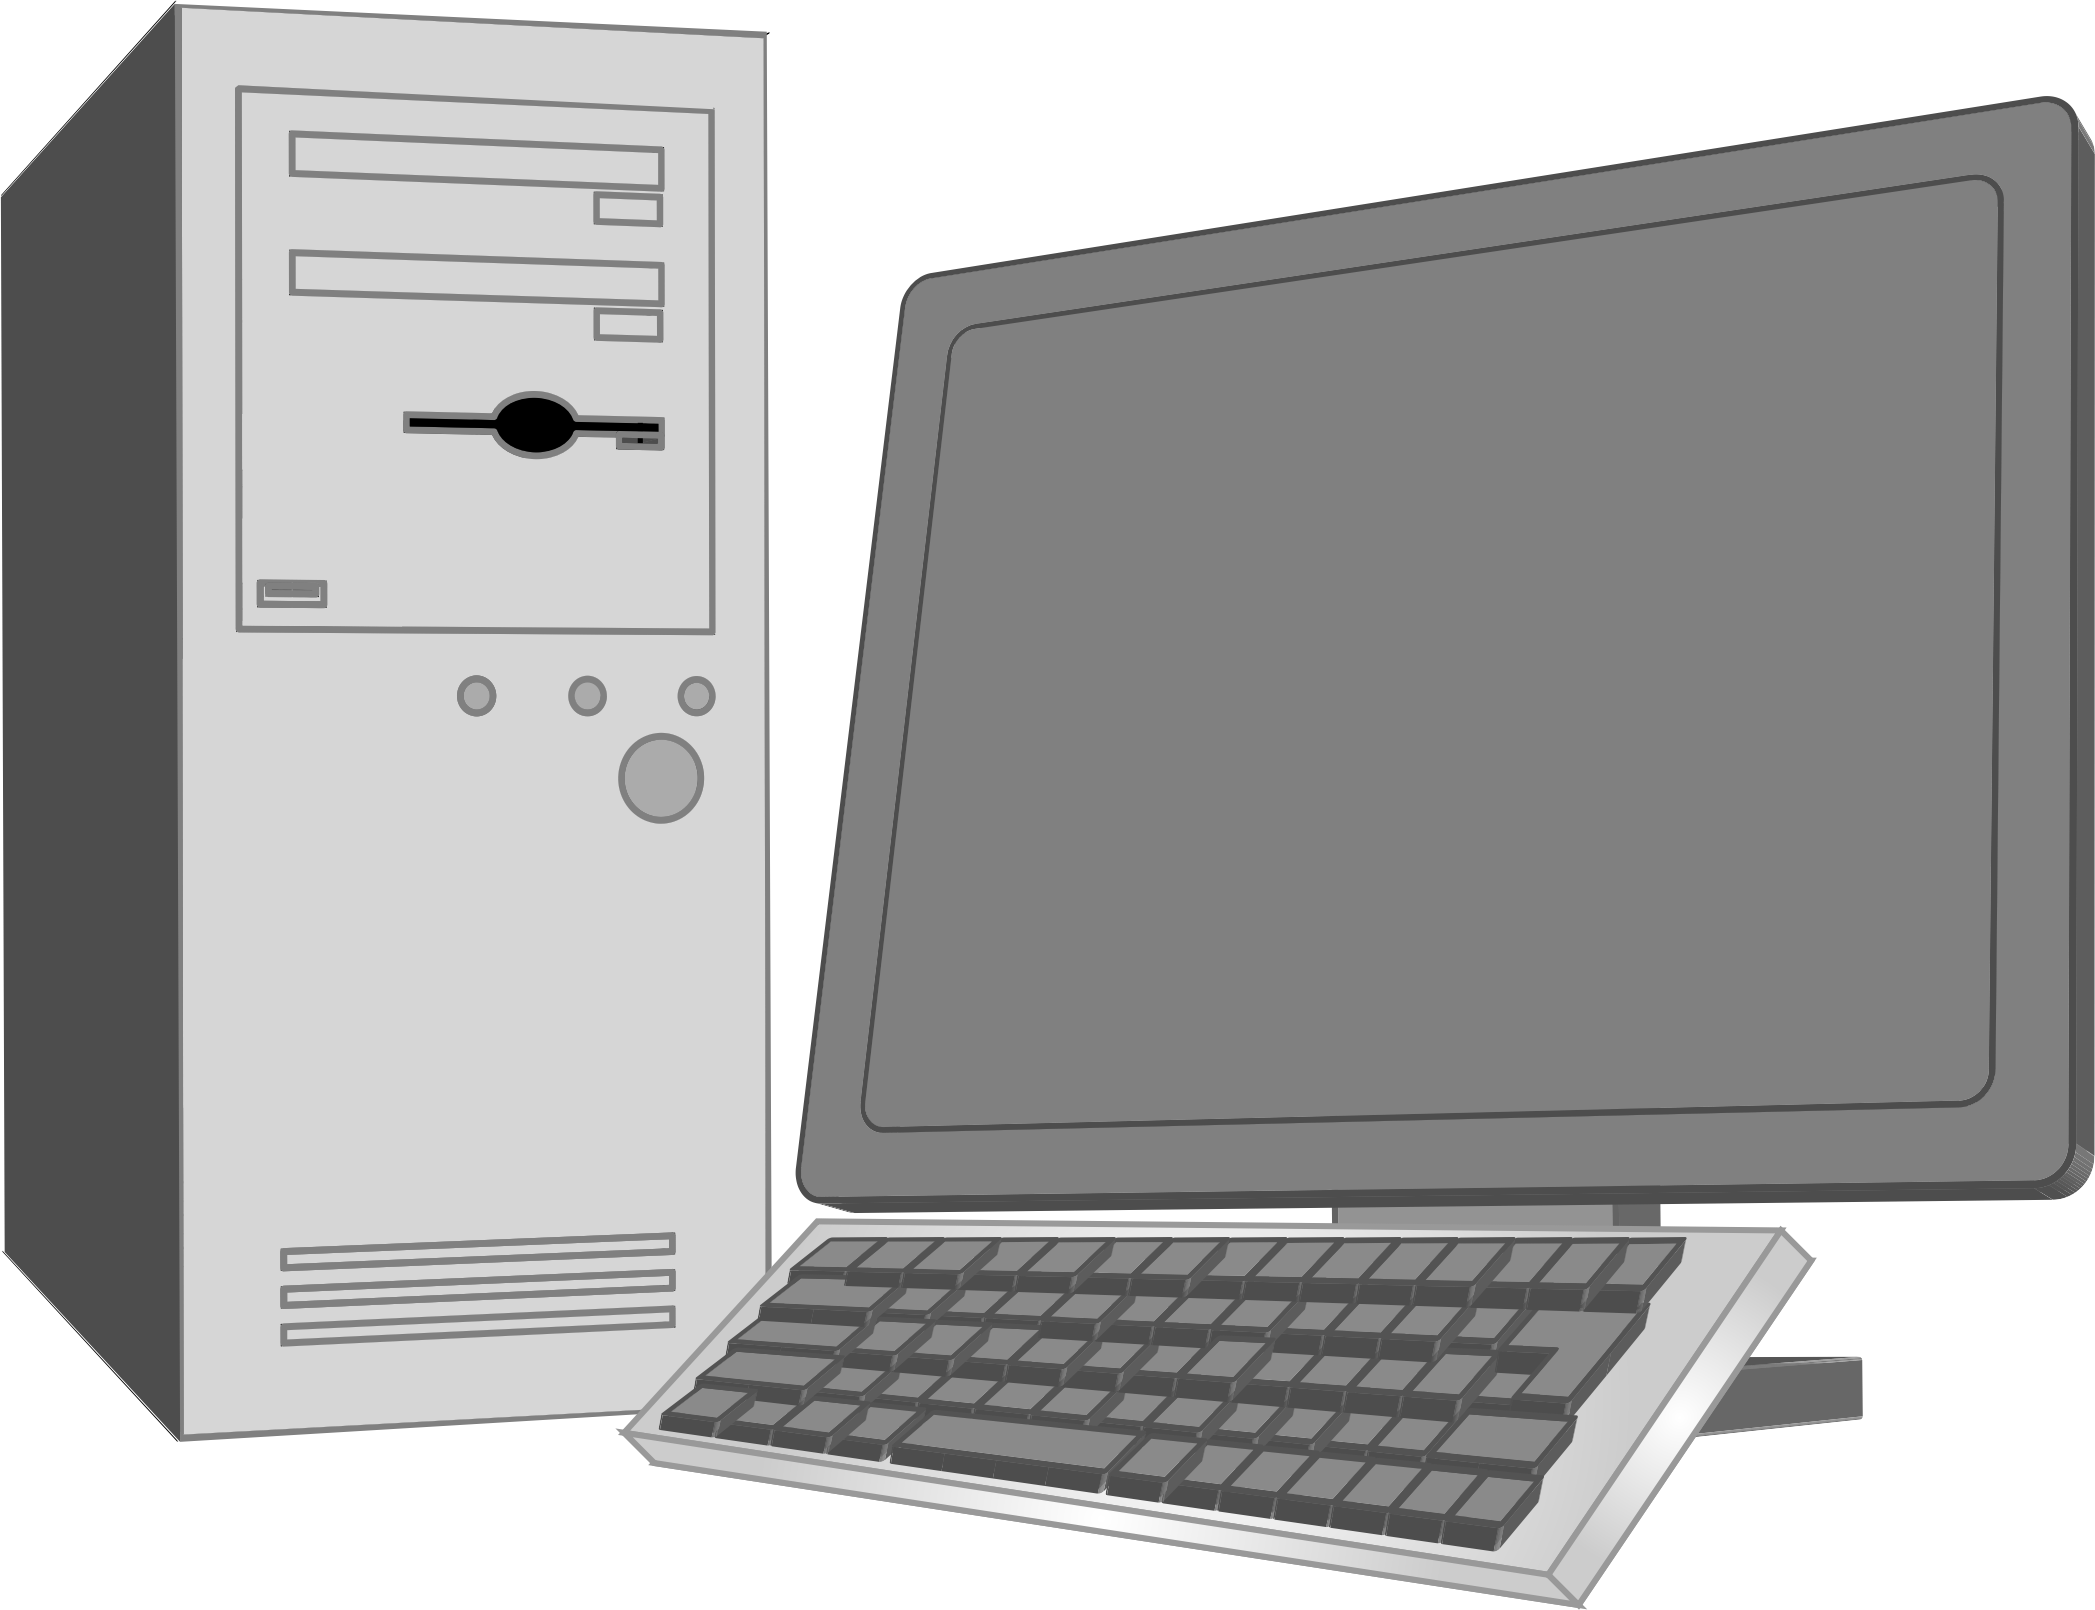 desktop computer by ozawa